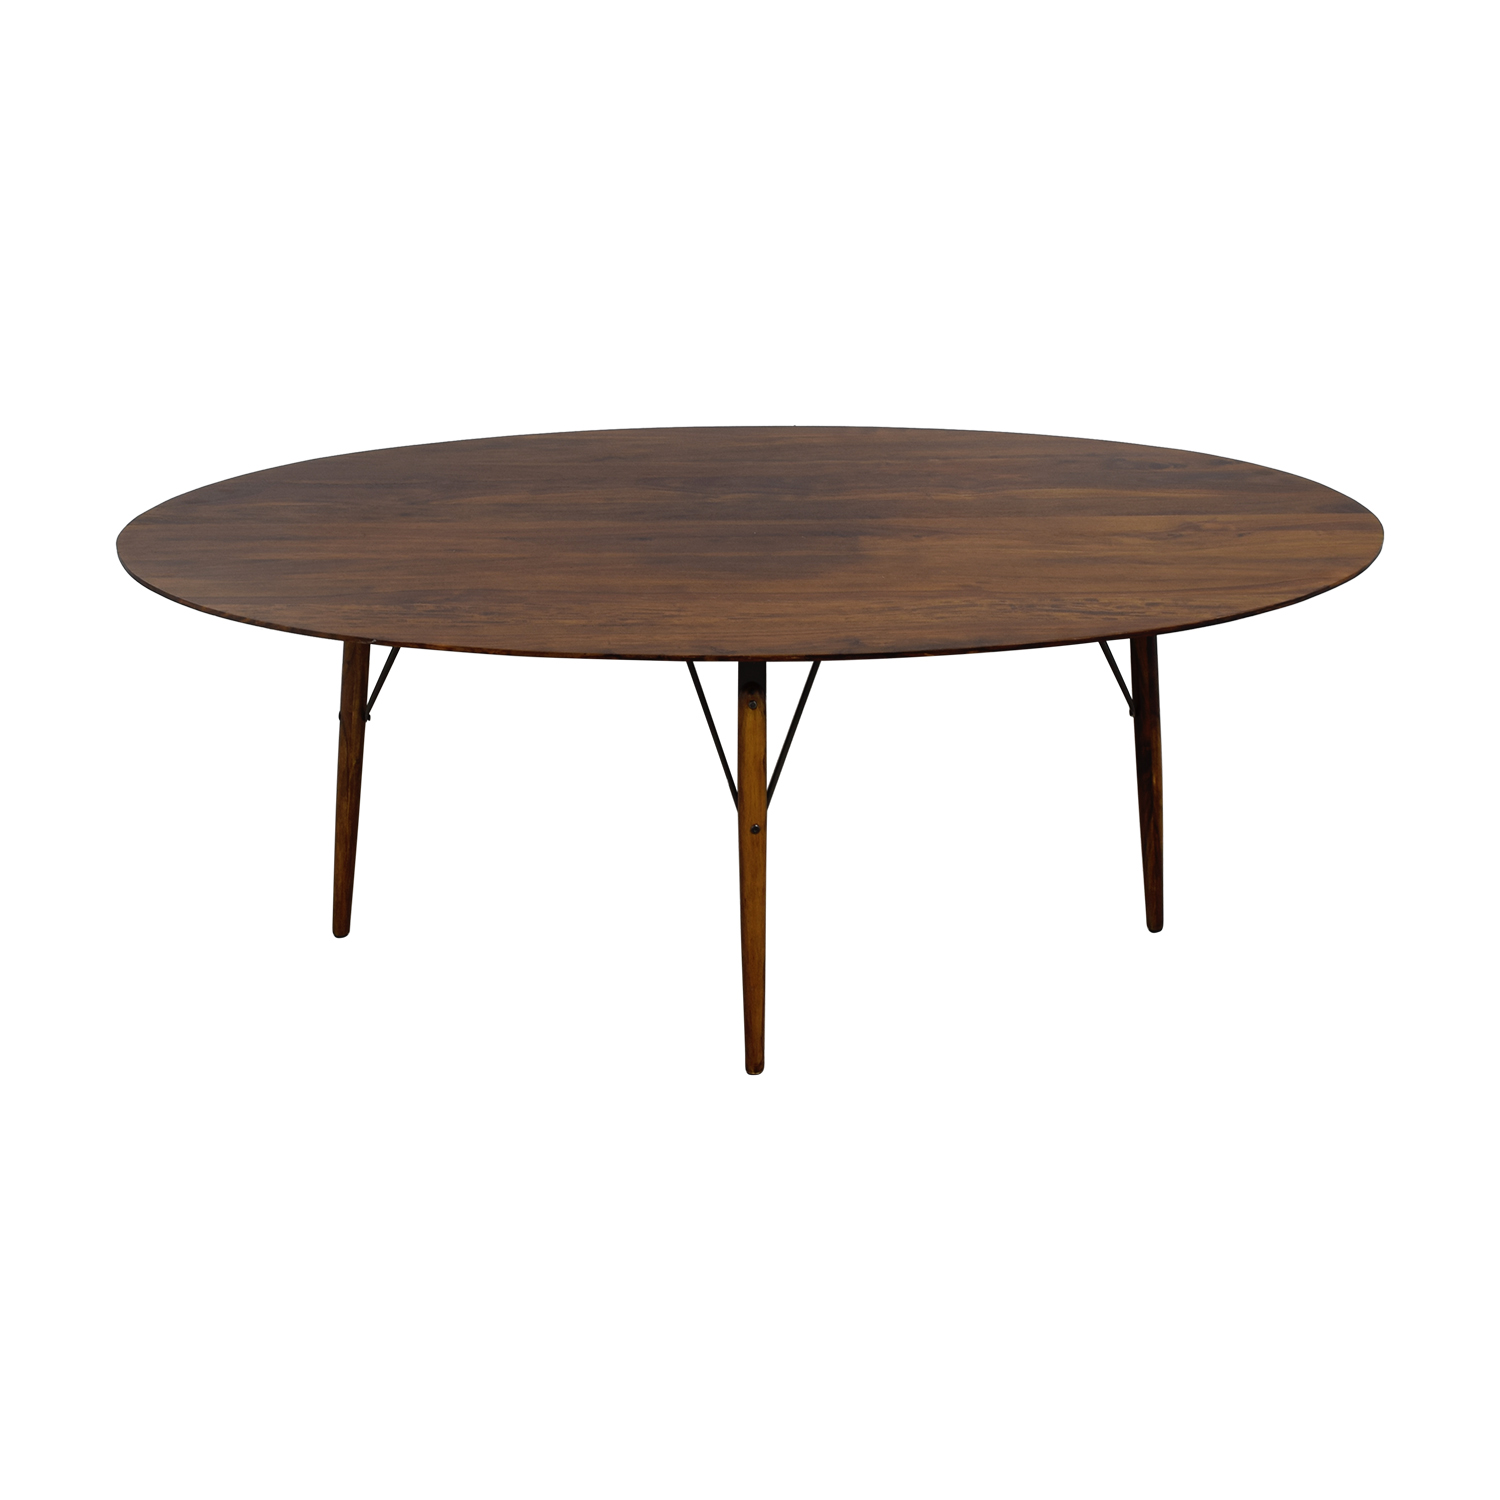 Swoon Editions Swoon Editions Rosewood Oval Wood Dining Table On